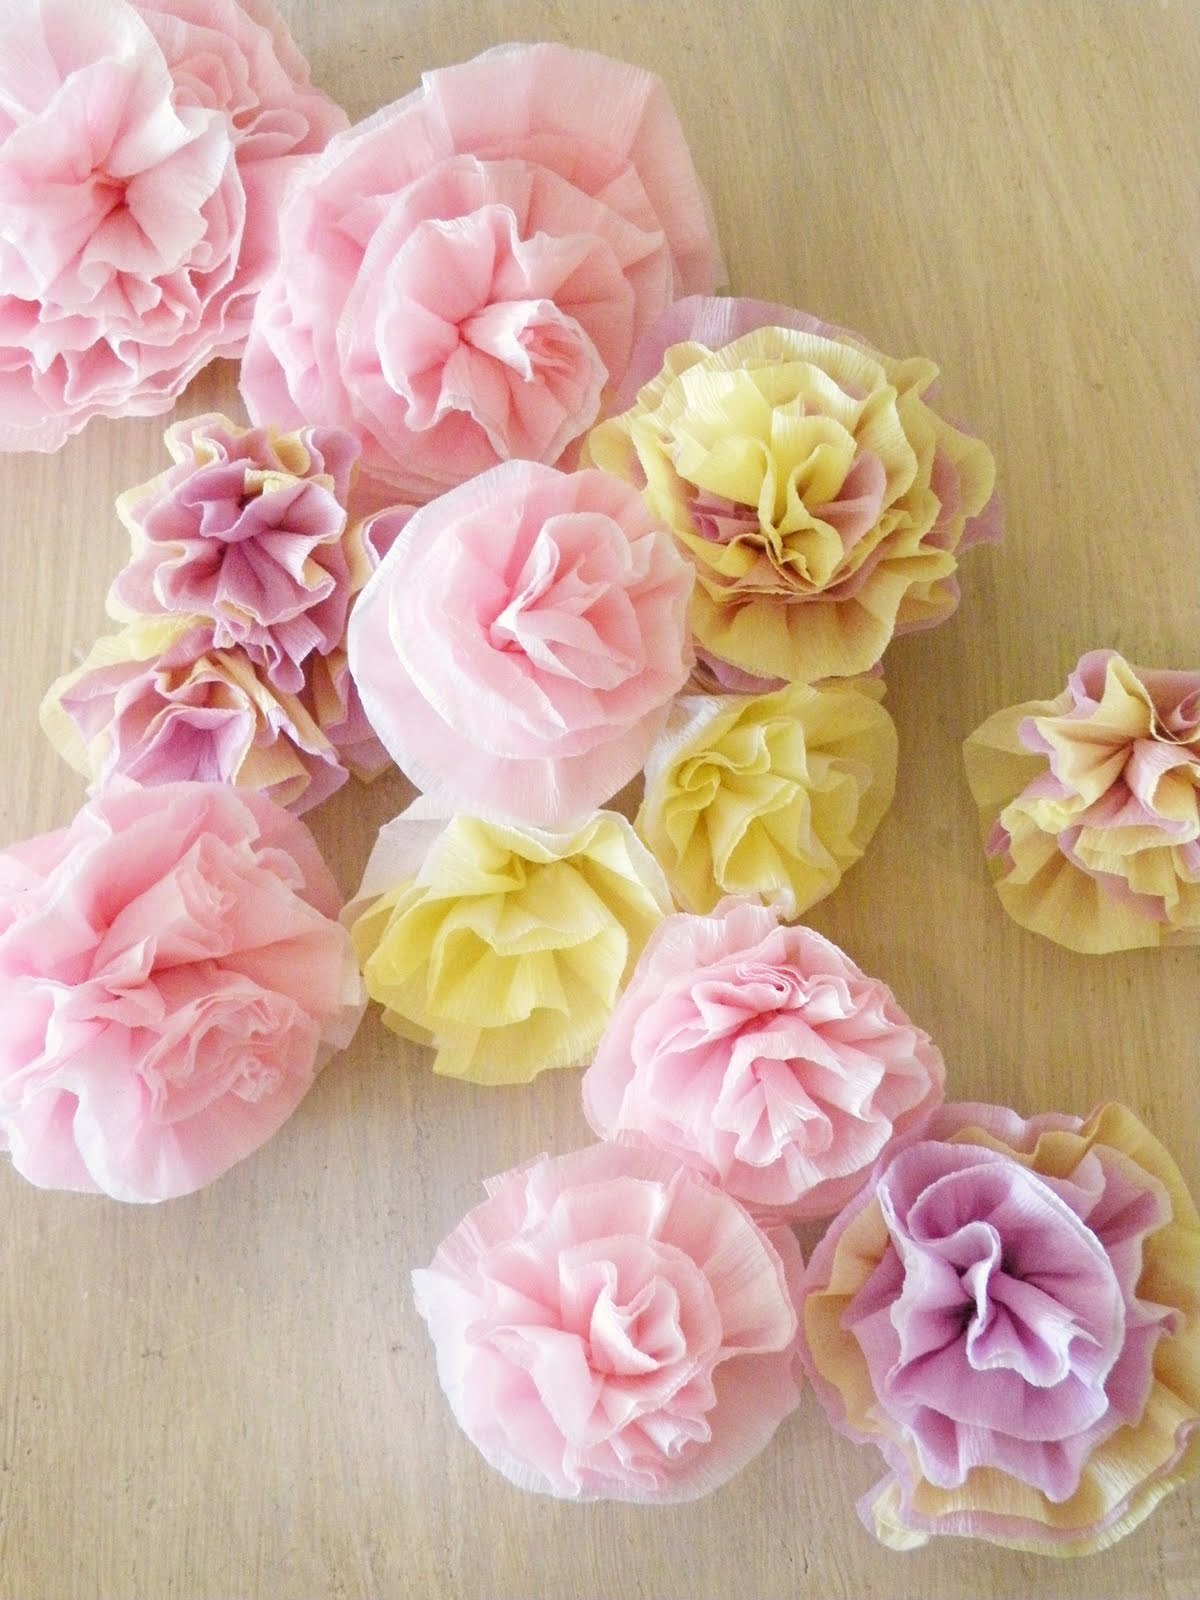 Icing designs lovely crepe paper flowers all you need is crepe paper and hot gluewe layered the crepe paper with two colors to add some depth the length of crepe paper you need just depends on mightylinksfo